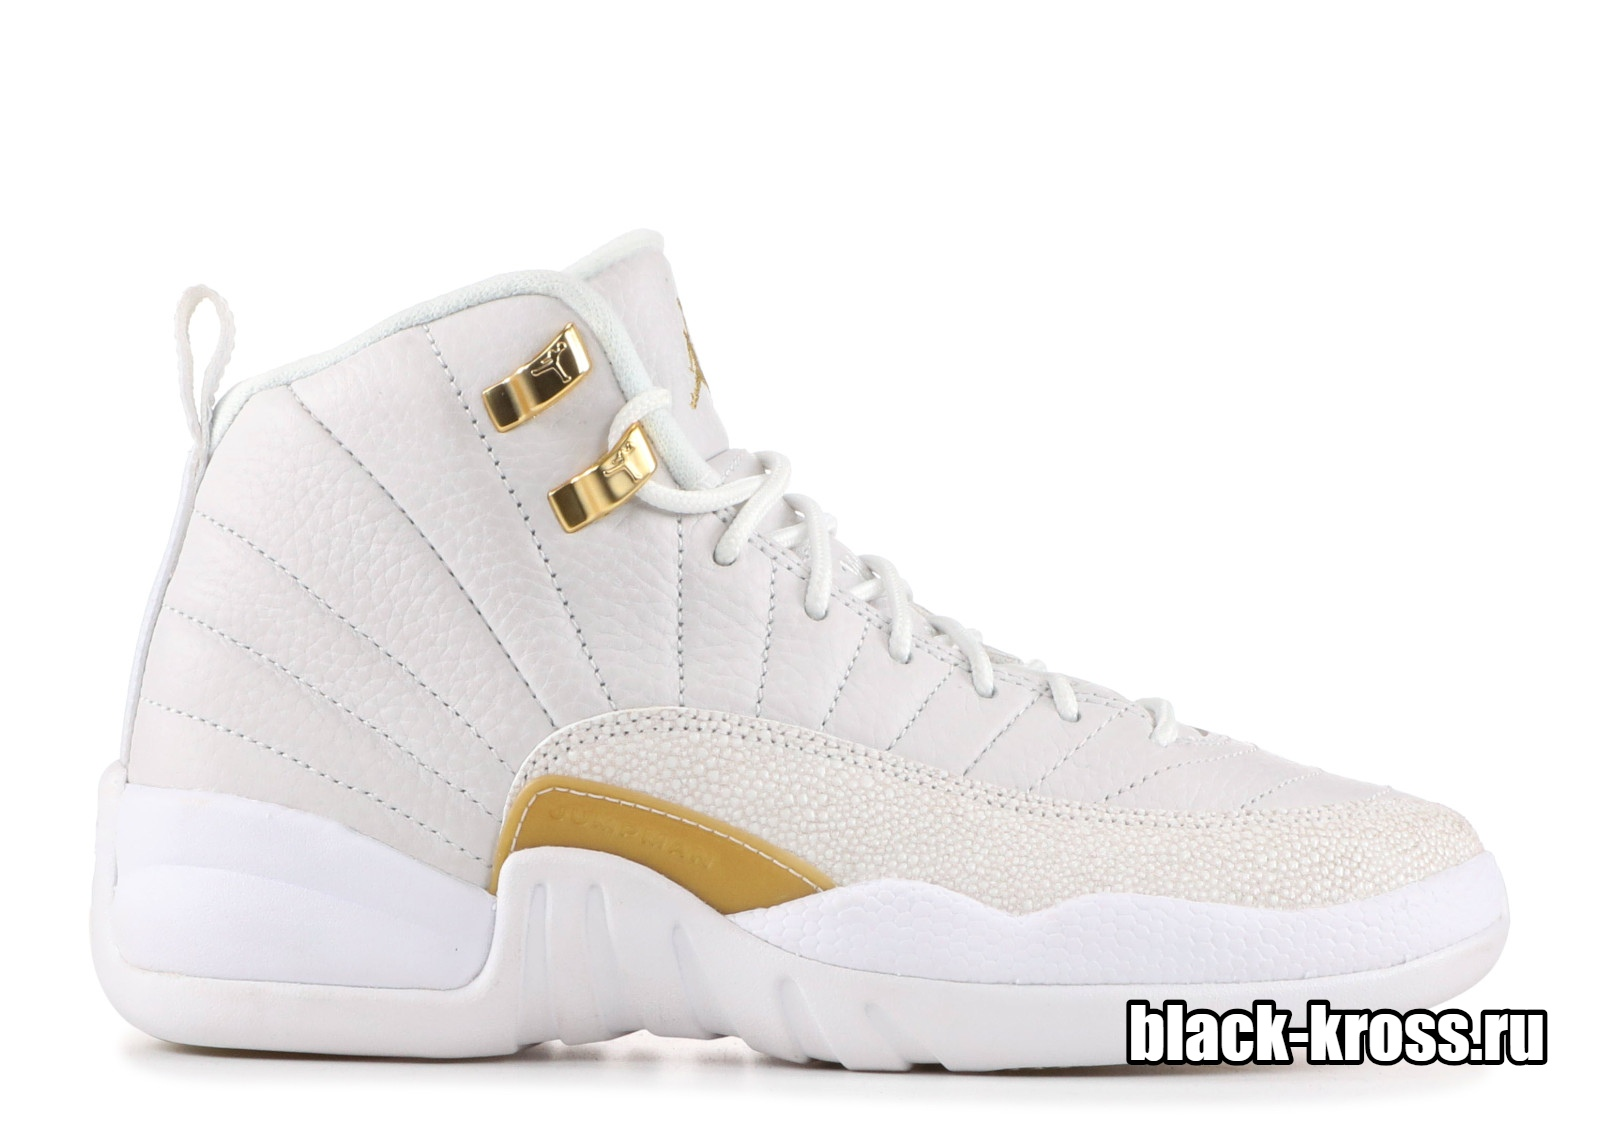 NIKE AIR JORDAN 12 RETRO White & Gold (41-46)